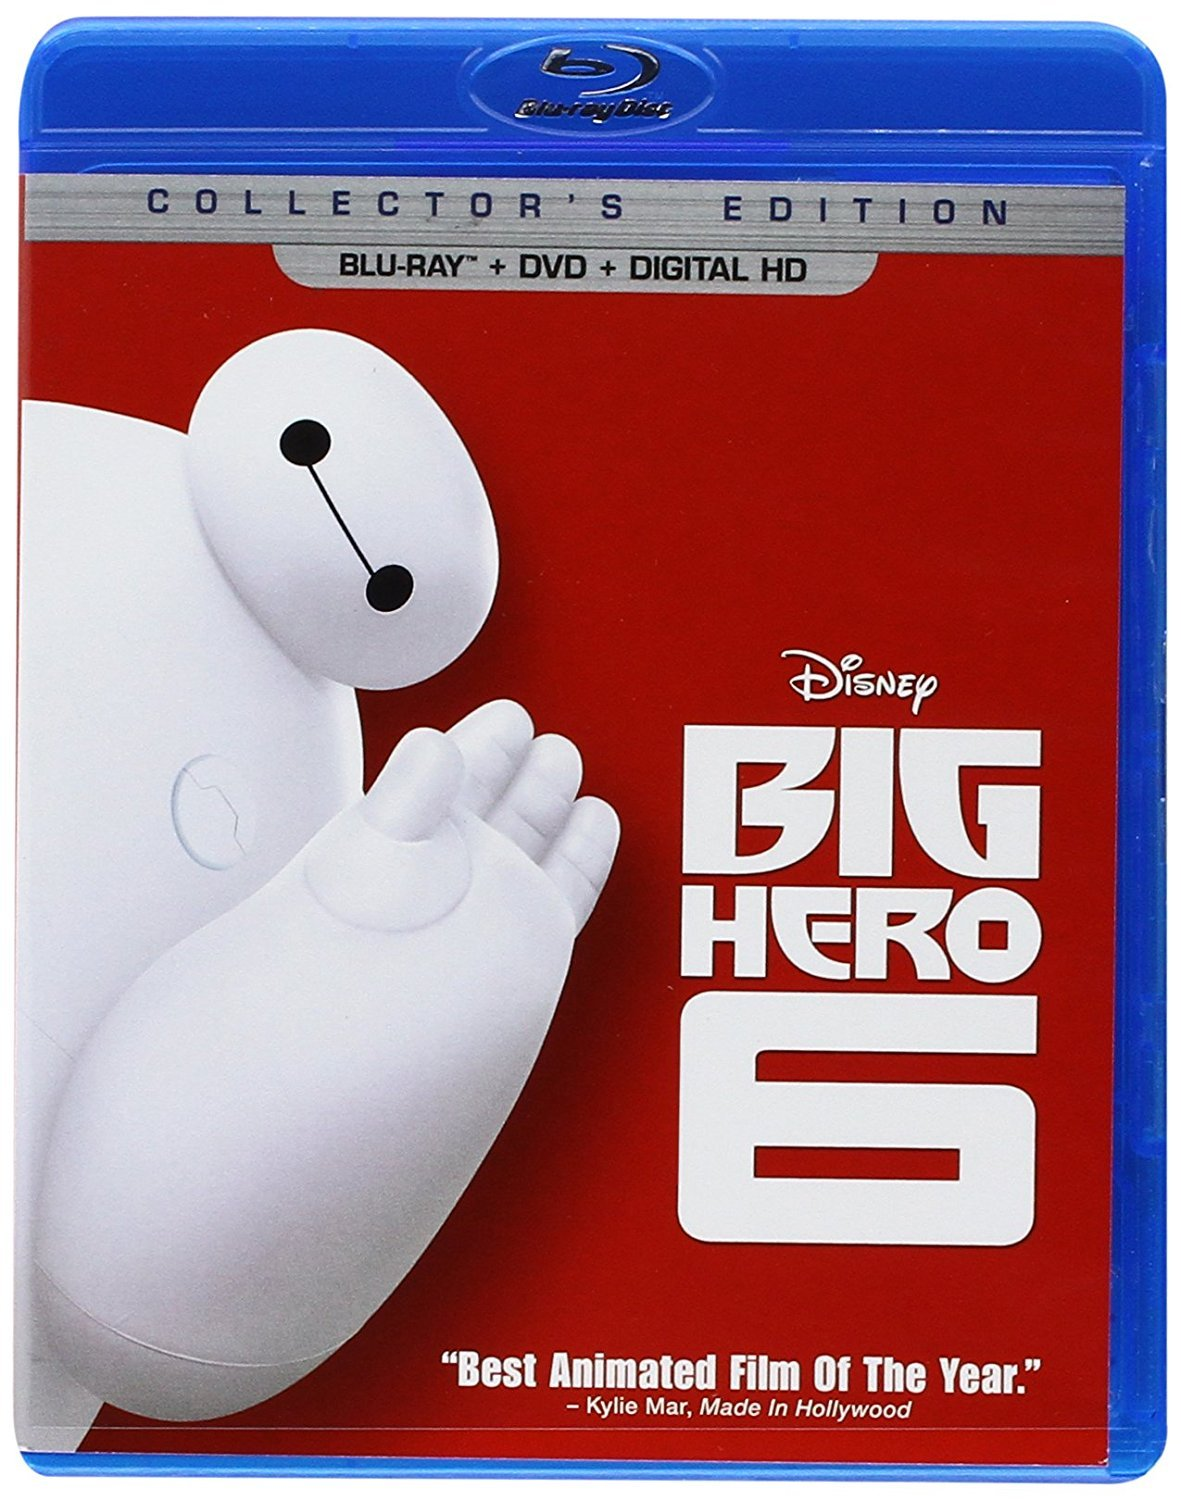 Disney Big Hero 6 (Blu-ray + DVD + Digital)